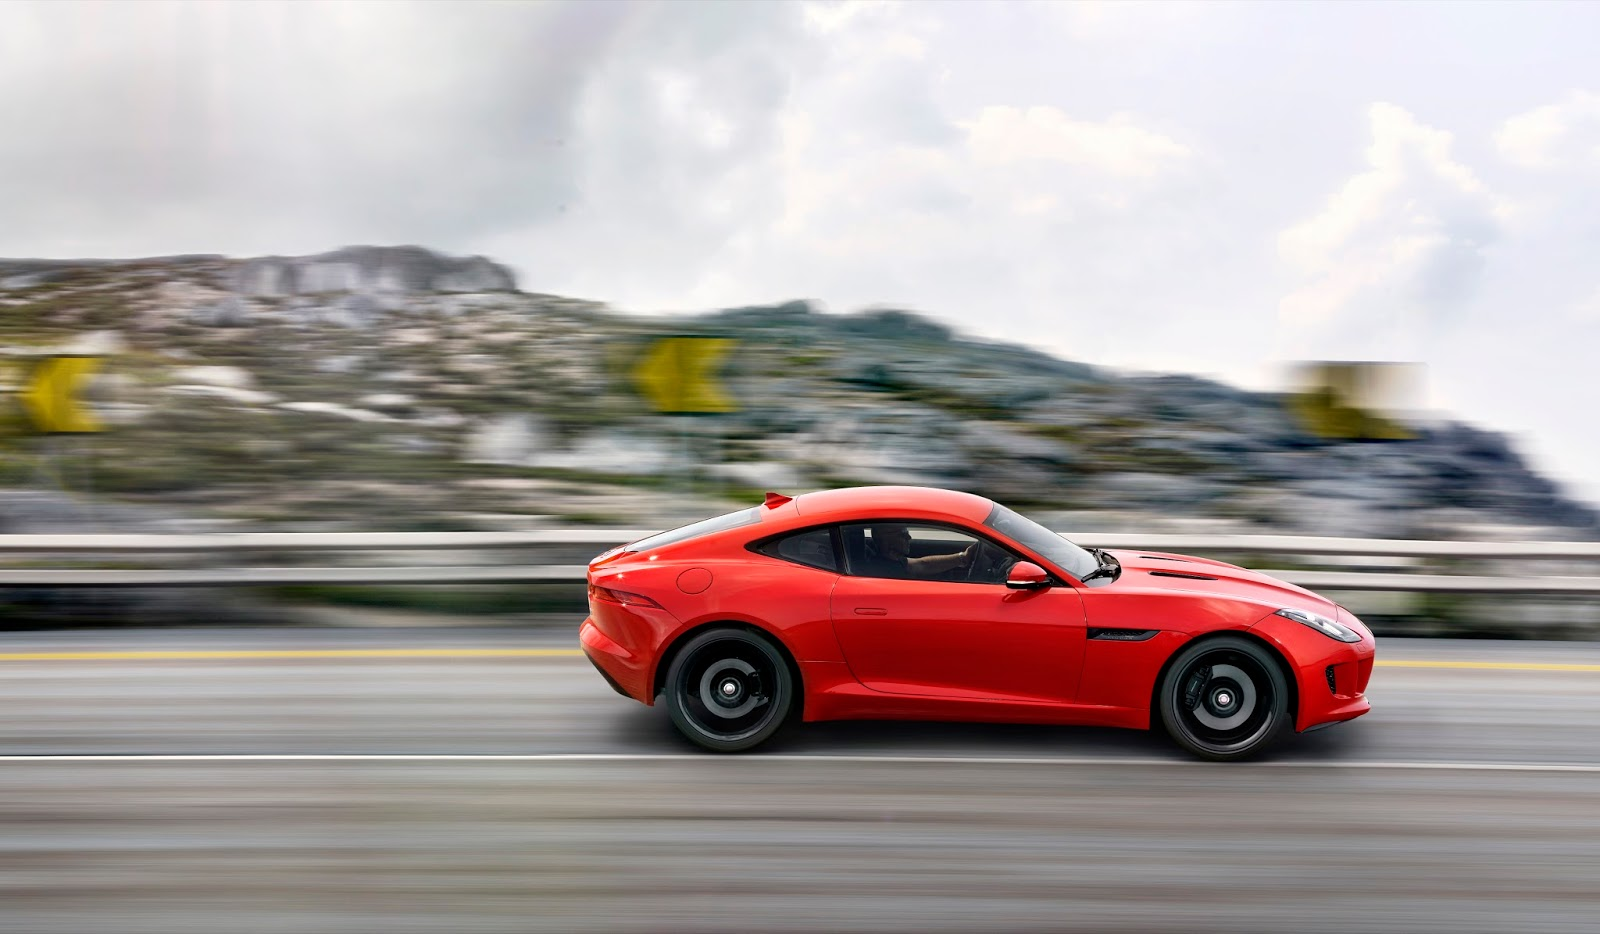 2014 Jaguar F-Type coupe salsa red